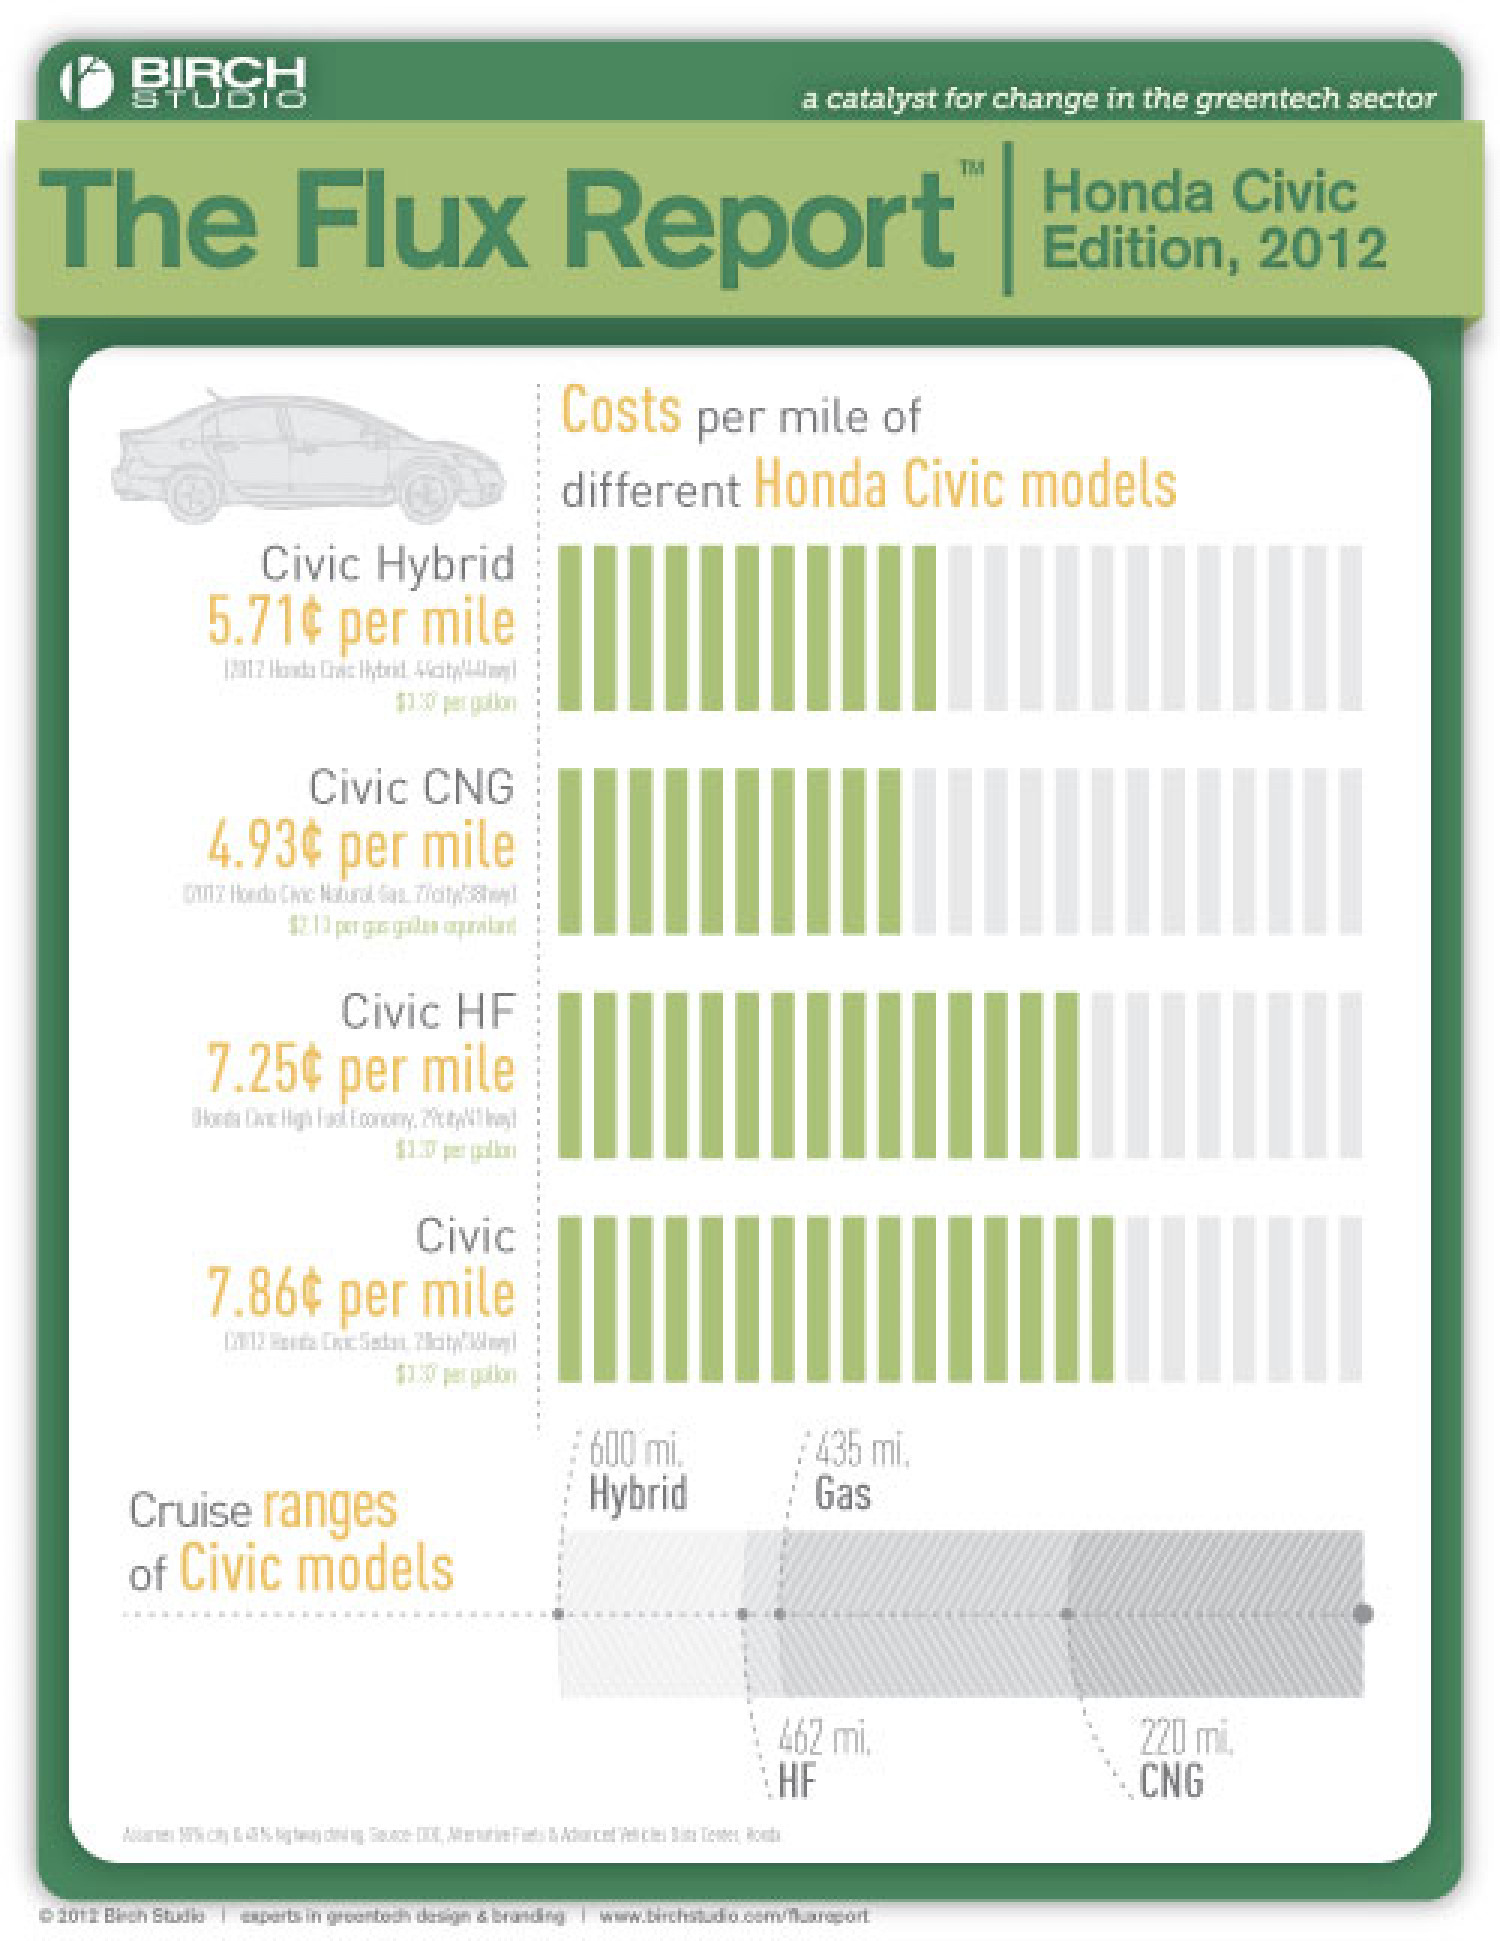 The Flux Report - Civic Edition Infographic